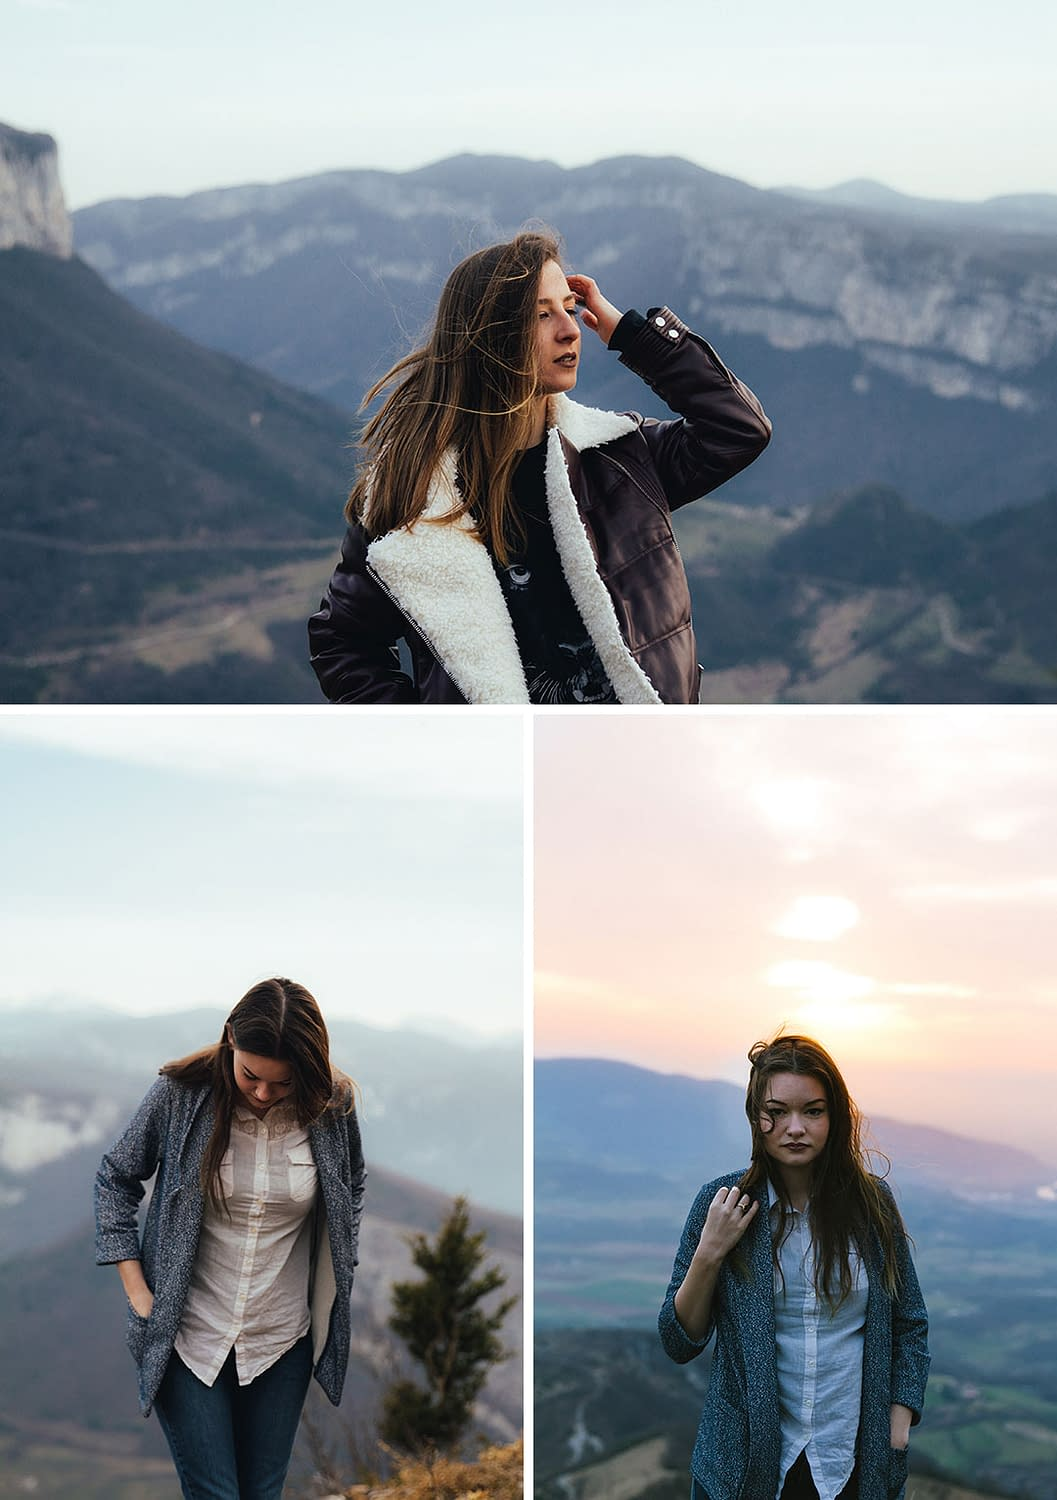 Séance photo portrait en montagne - lifestyle adventure